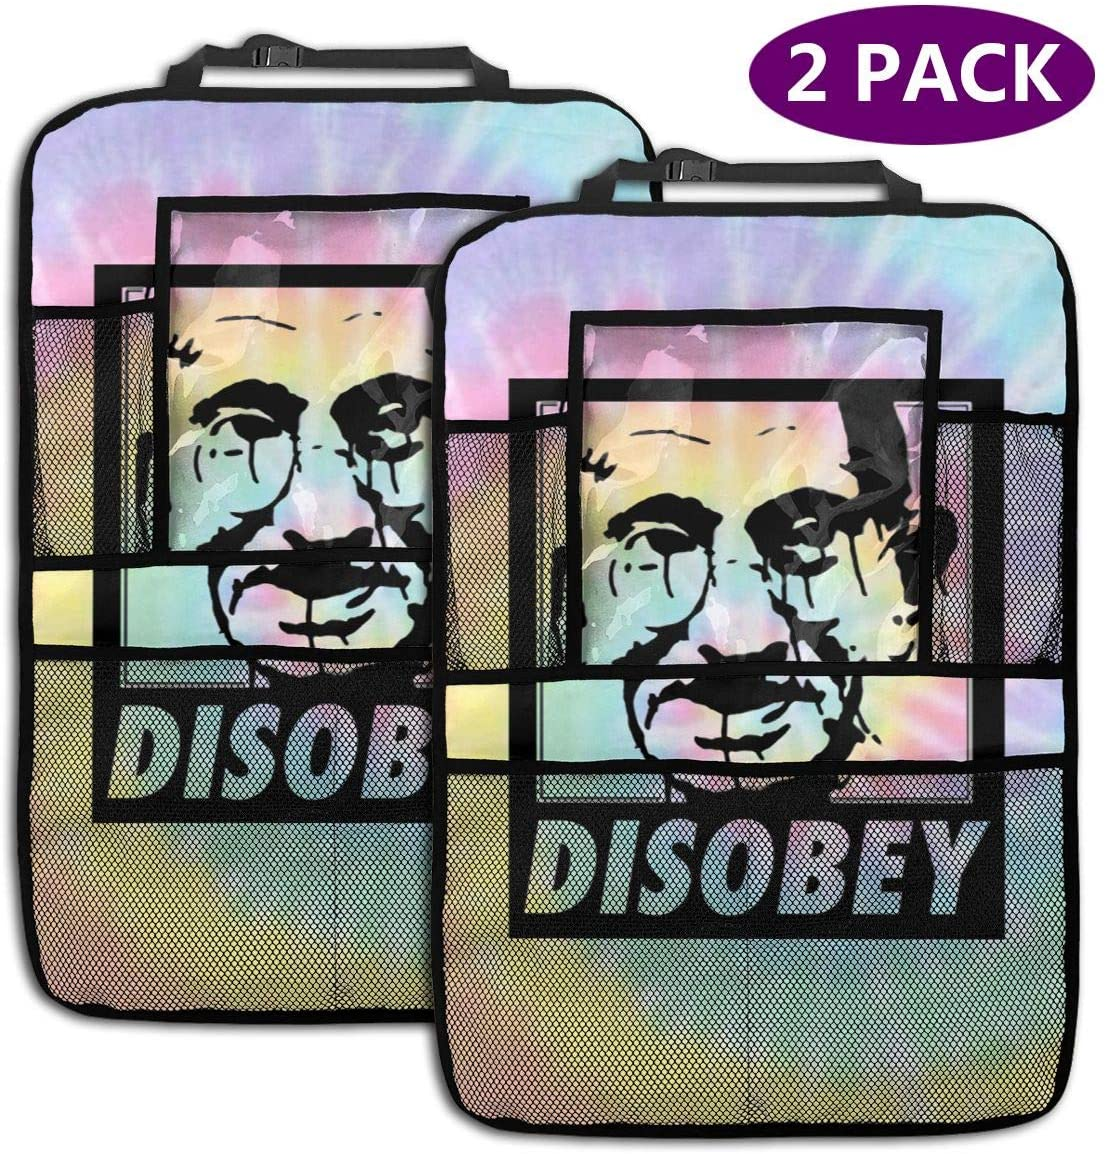 Backseat Car Organizer Disobey Gandhi Revolution Power to The People Seamless Vector Background 2 Pack Car Seat Organizer Waterproof Durable Multi Pocket Back Seat Storage Bag Travel Accessories